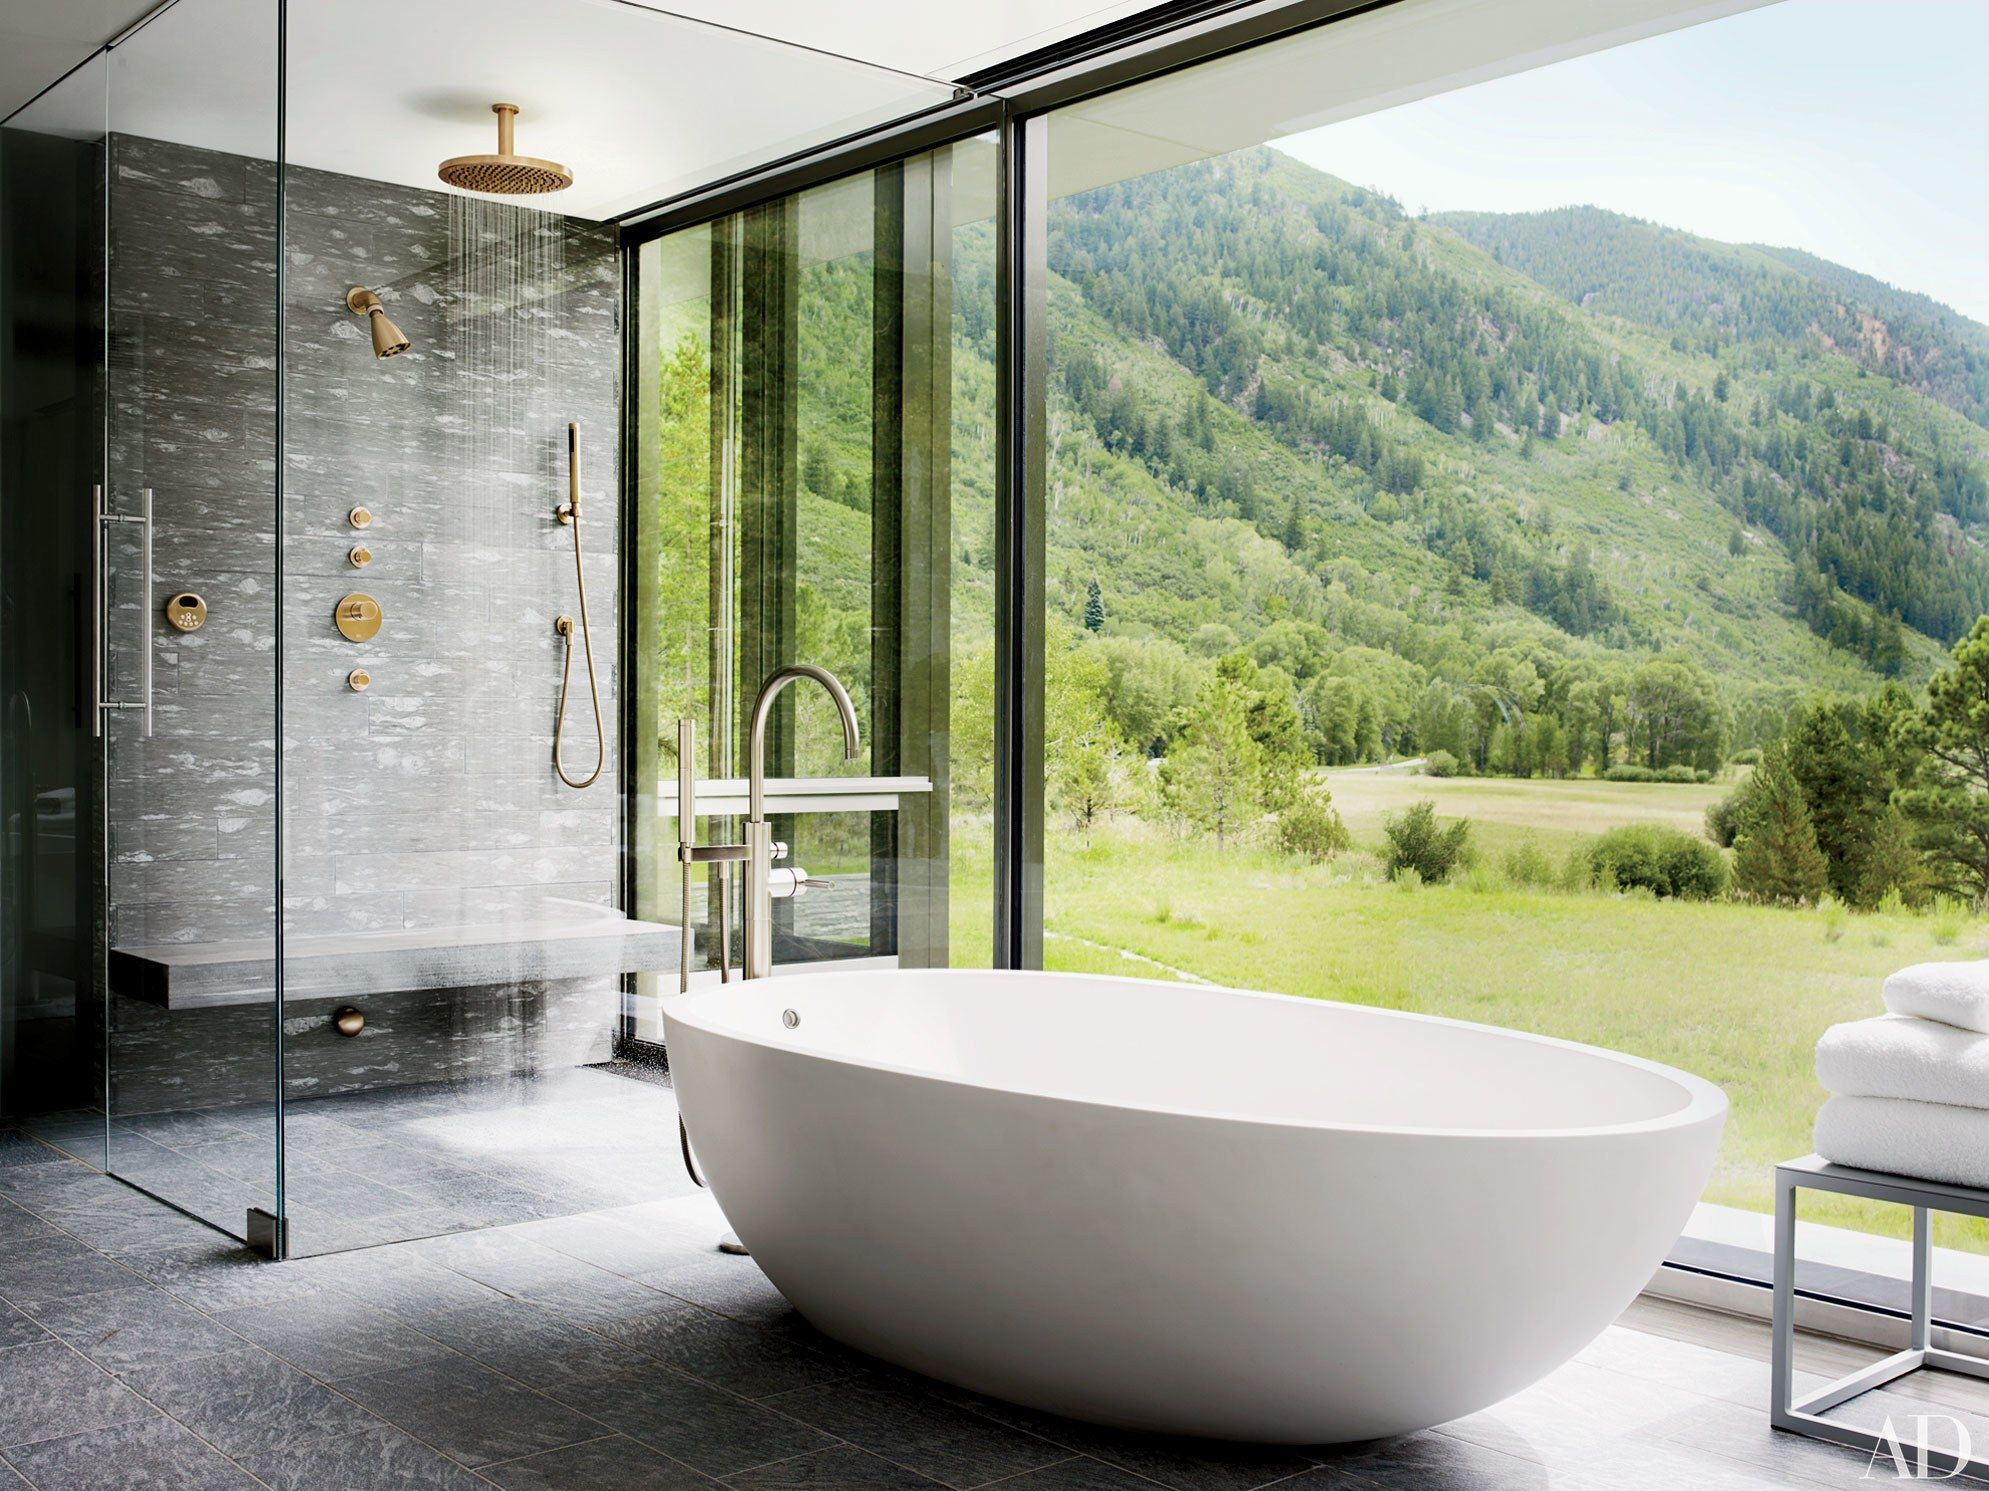 37 Stunning Showers Just As Luxurious As Tubs Luxus Badezimmer Grosse Dusche Und Badezimmer Klein